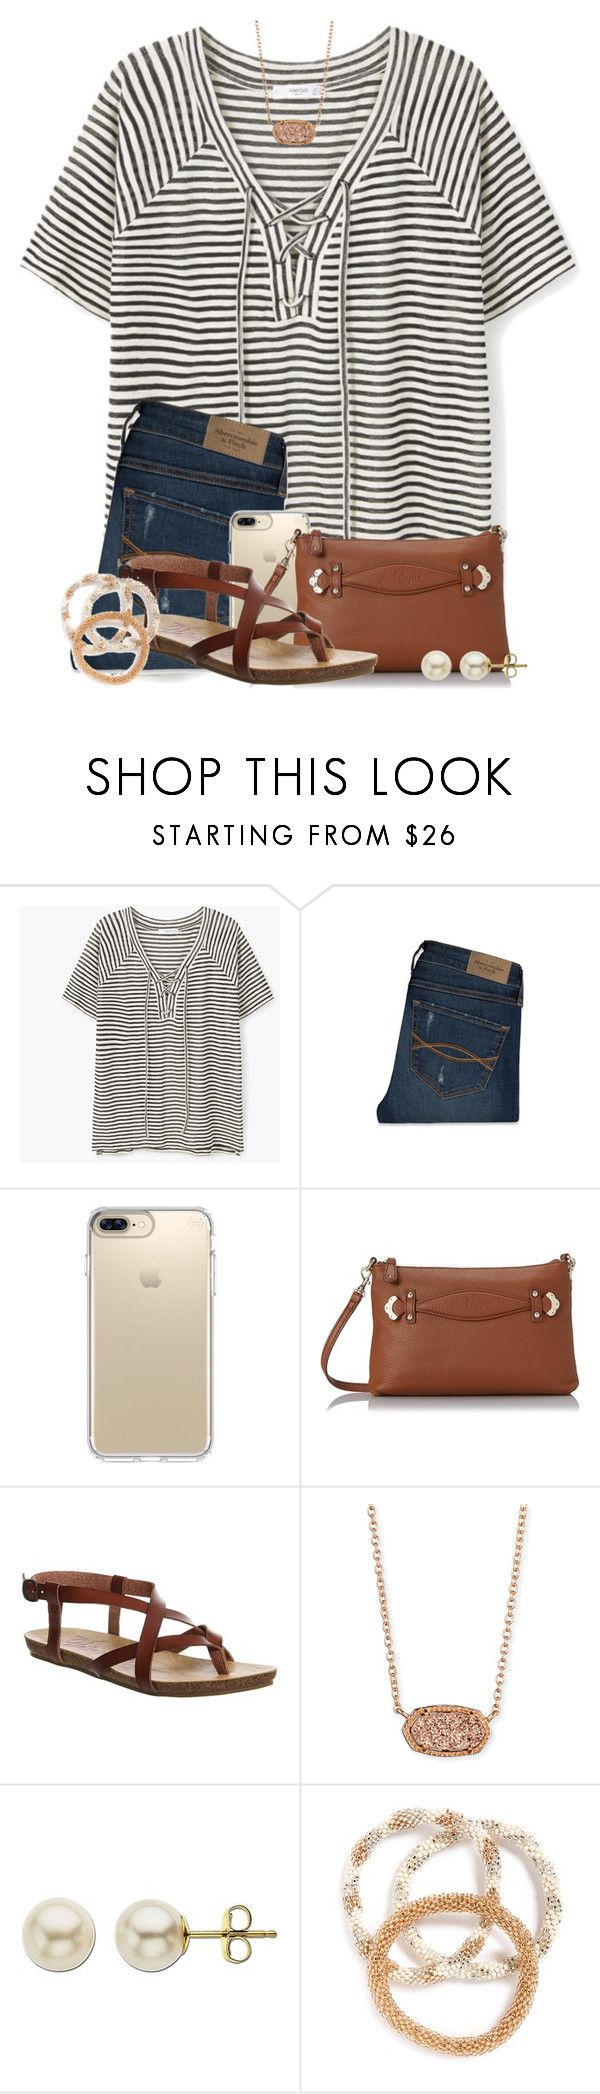 """just ordered my first jack rogers item!"" by jeh-shev ❤ liked on Polyvore featuring MANGO, Abercrombie & Fitch, Speck, Jack Rogers, Blowfish, Kendra Scott, Lord & Taylor and Aid Through Trade"